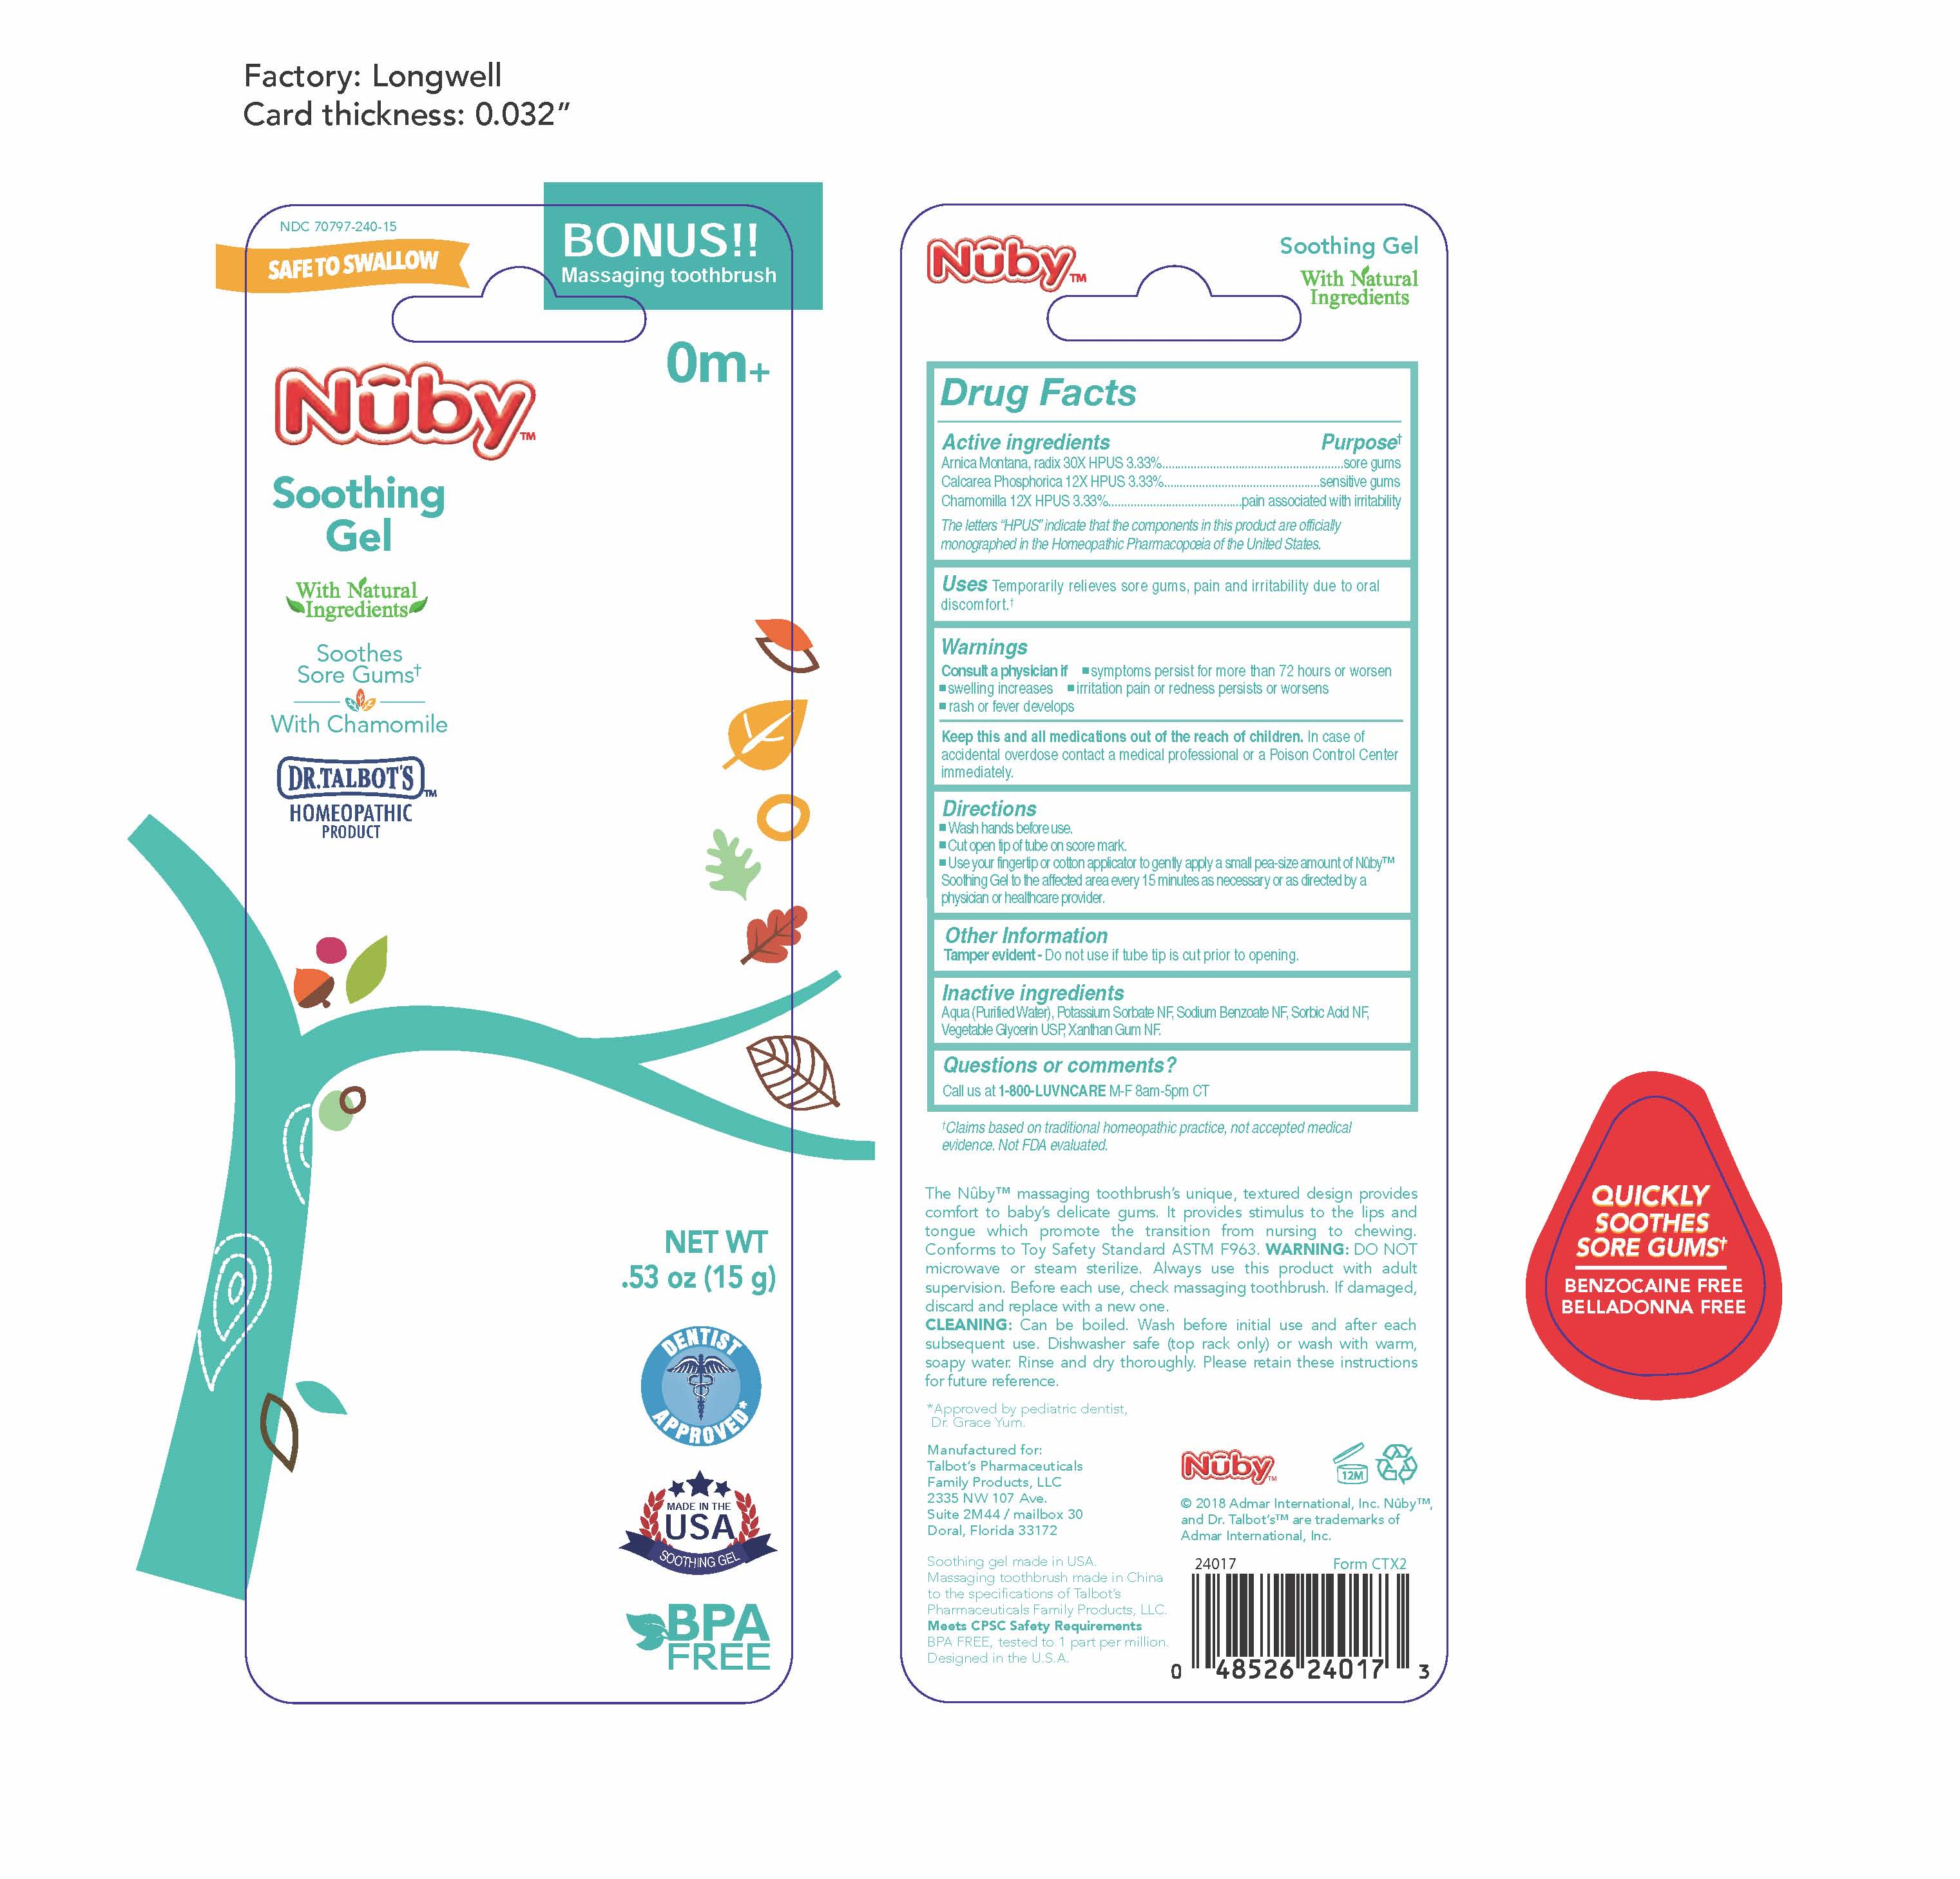 Nuby Soothing Gel   Matricaria Recutita 12 [hp_x], Arnica Montana Root 30 [hp_x], Calcium Cation 12 [hp_x] safe for breastfeeding